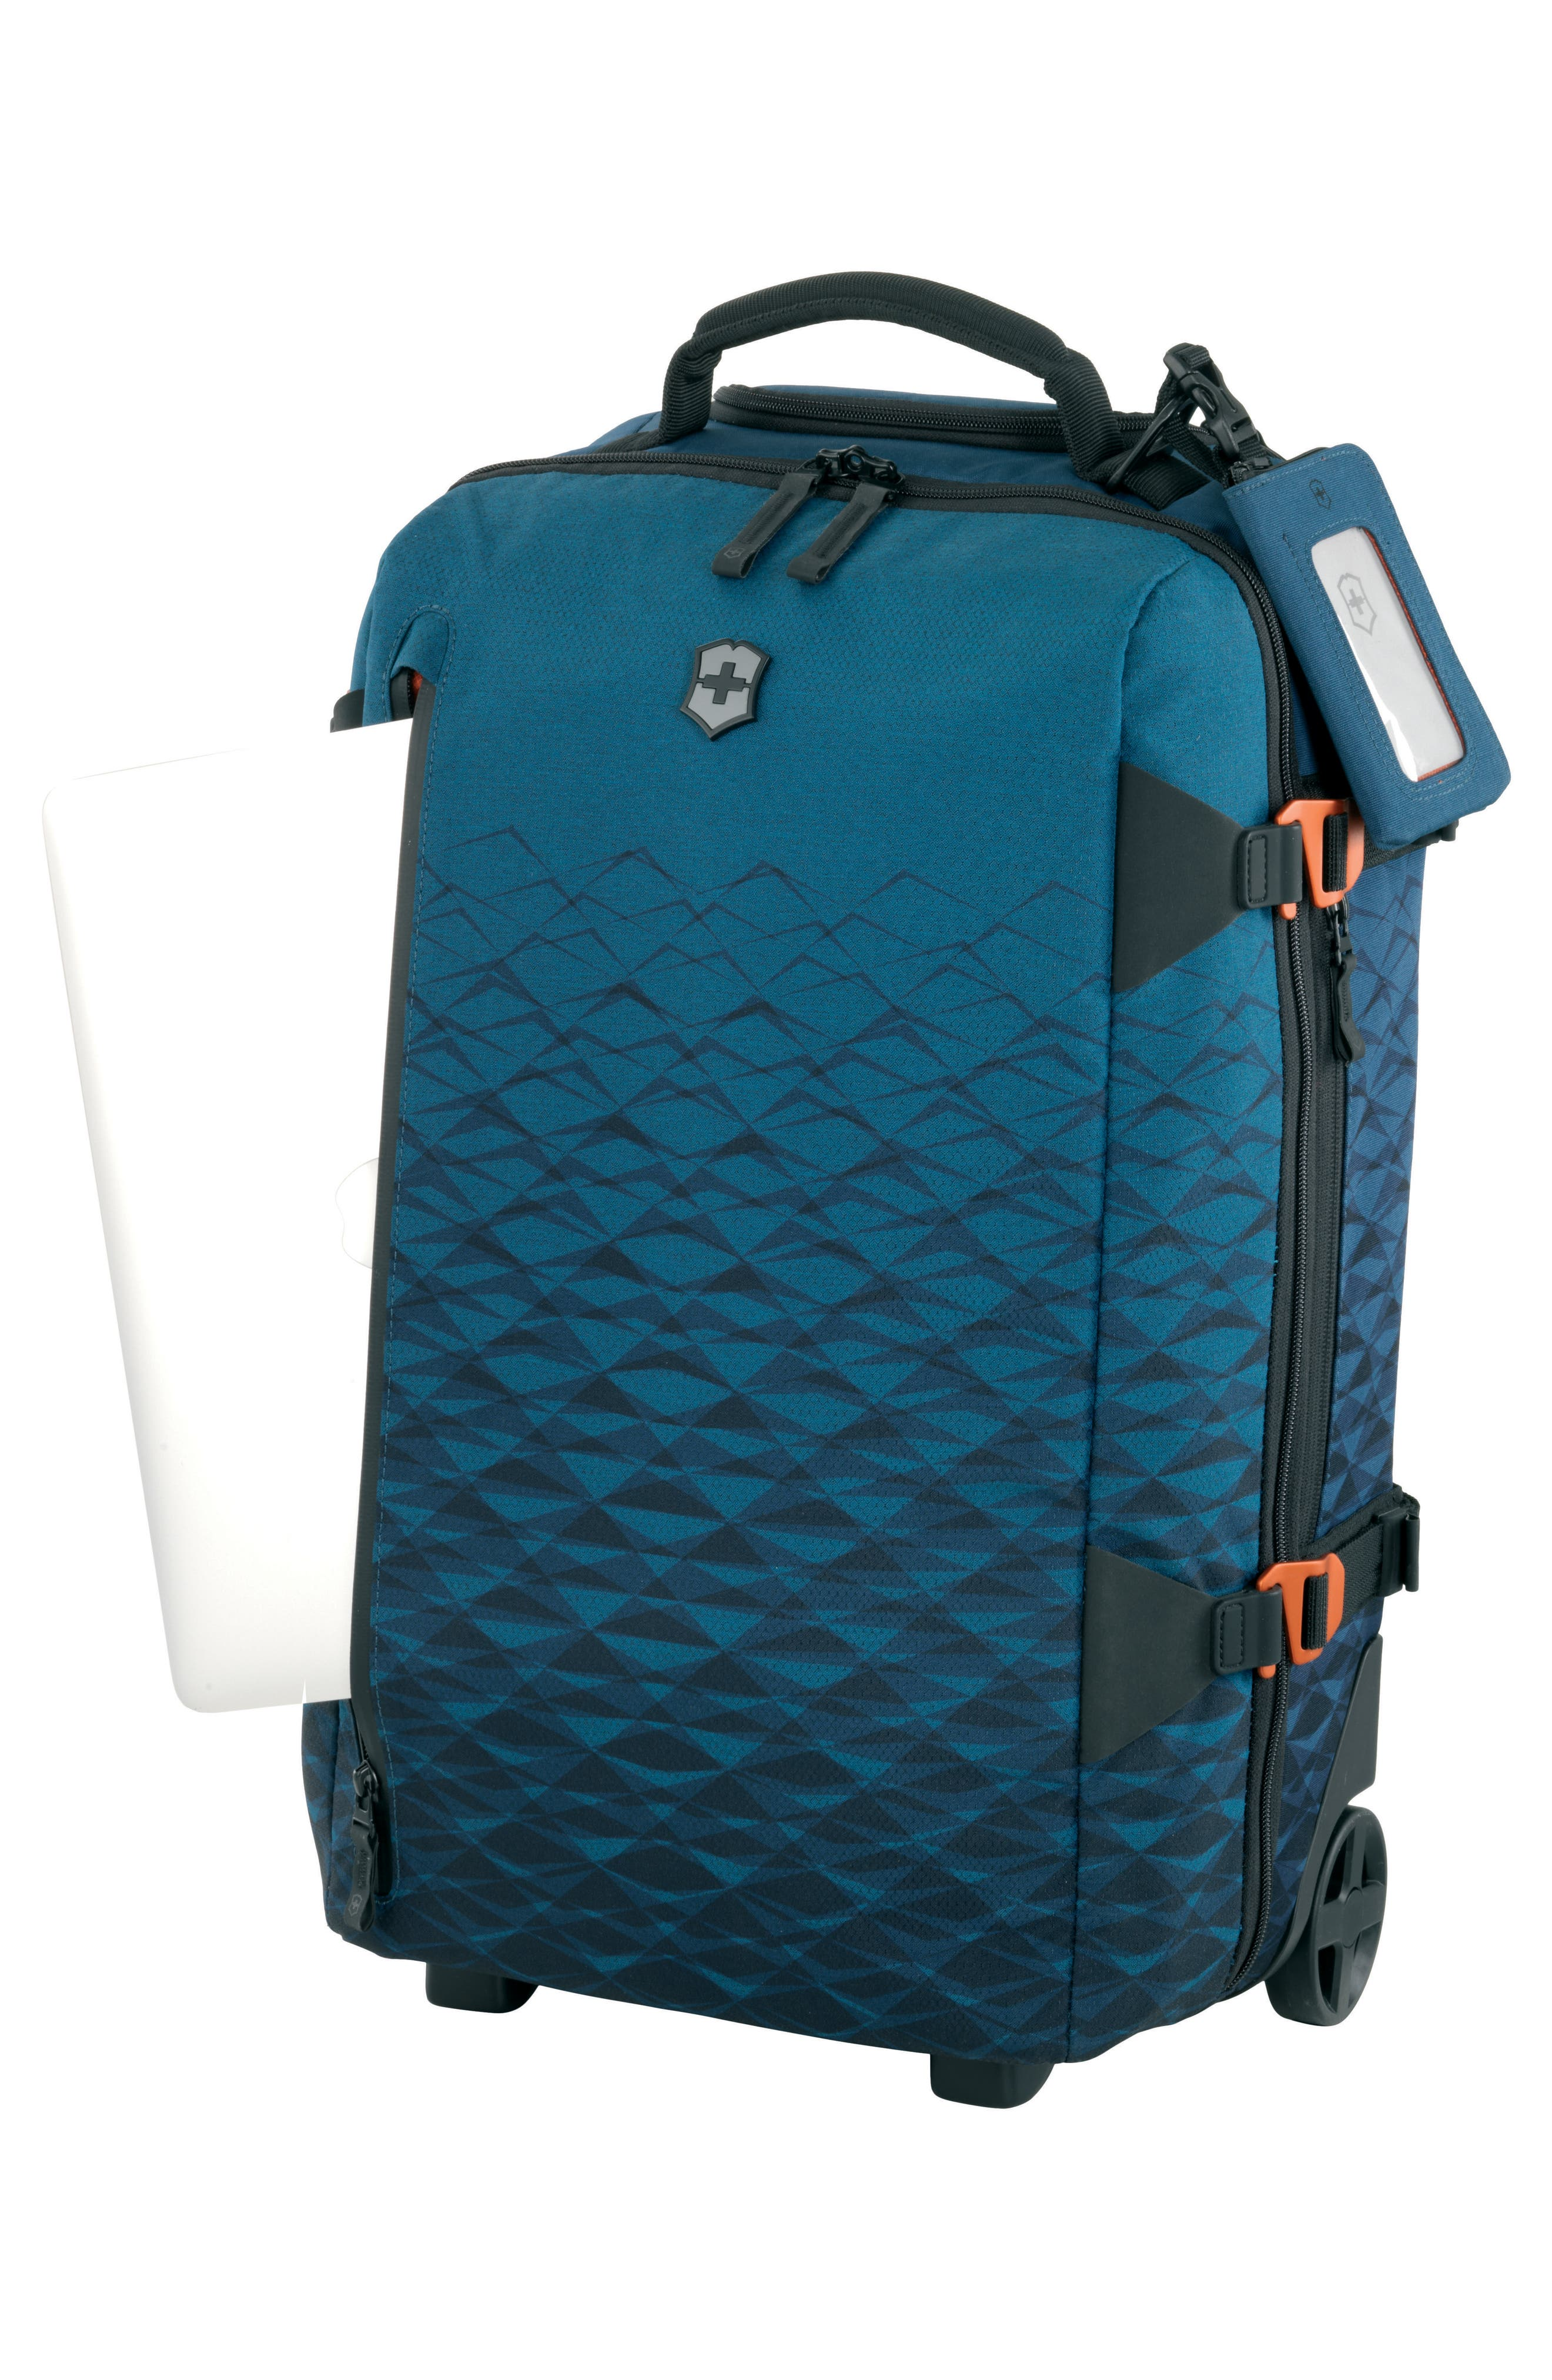 VX Touring 21-Inch Carry-On,                             Alternate thumbnail 6, color,                             Dark Teal